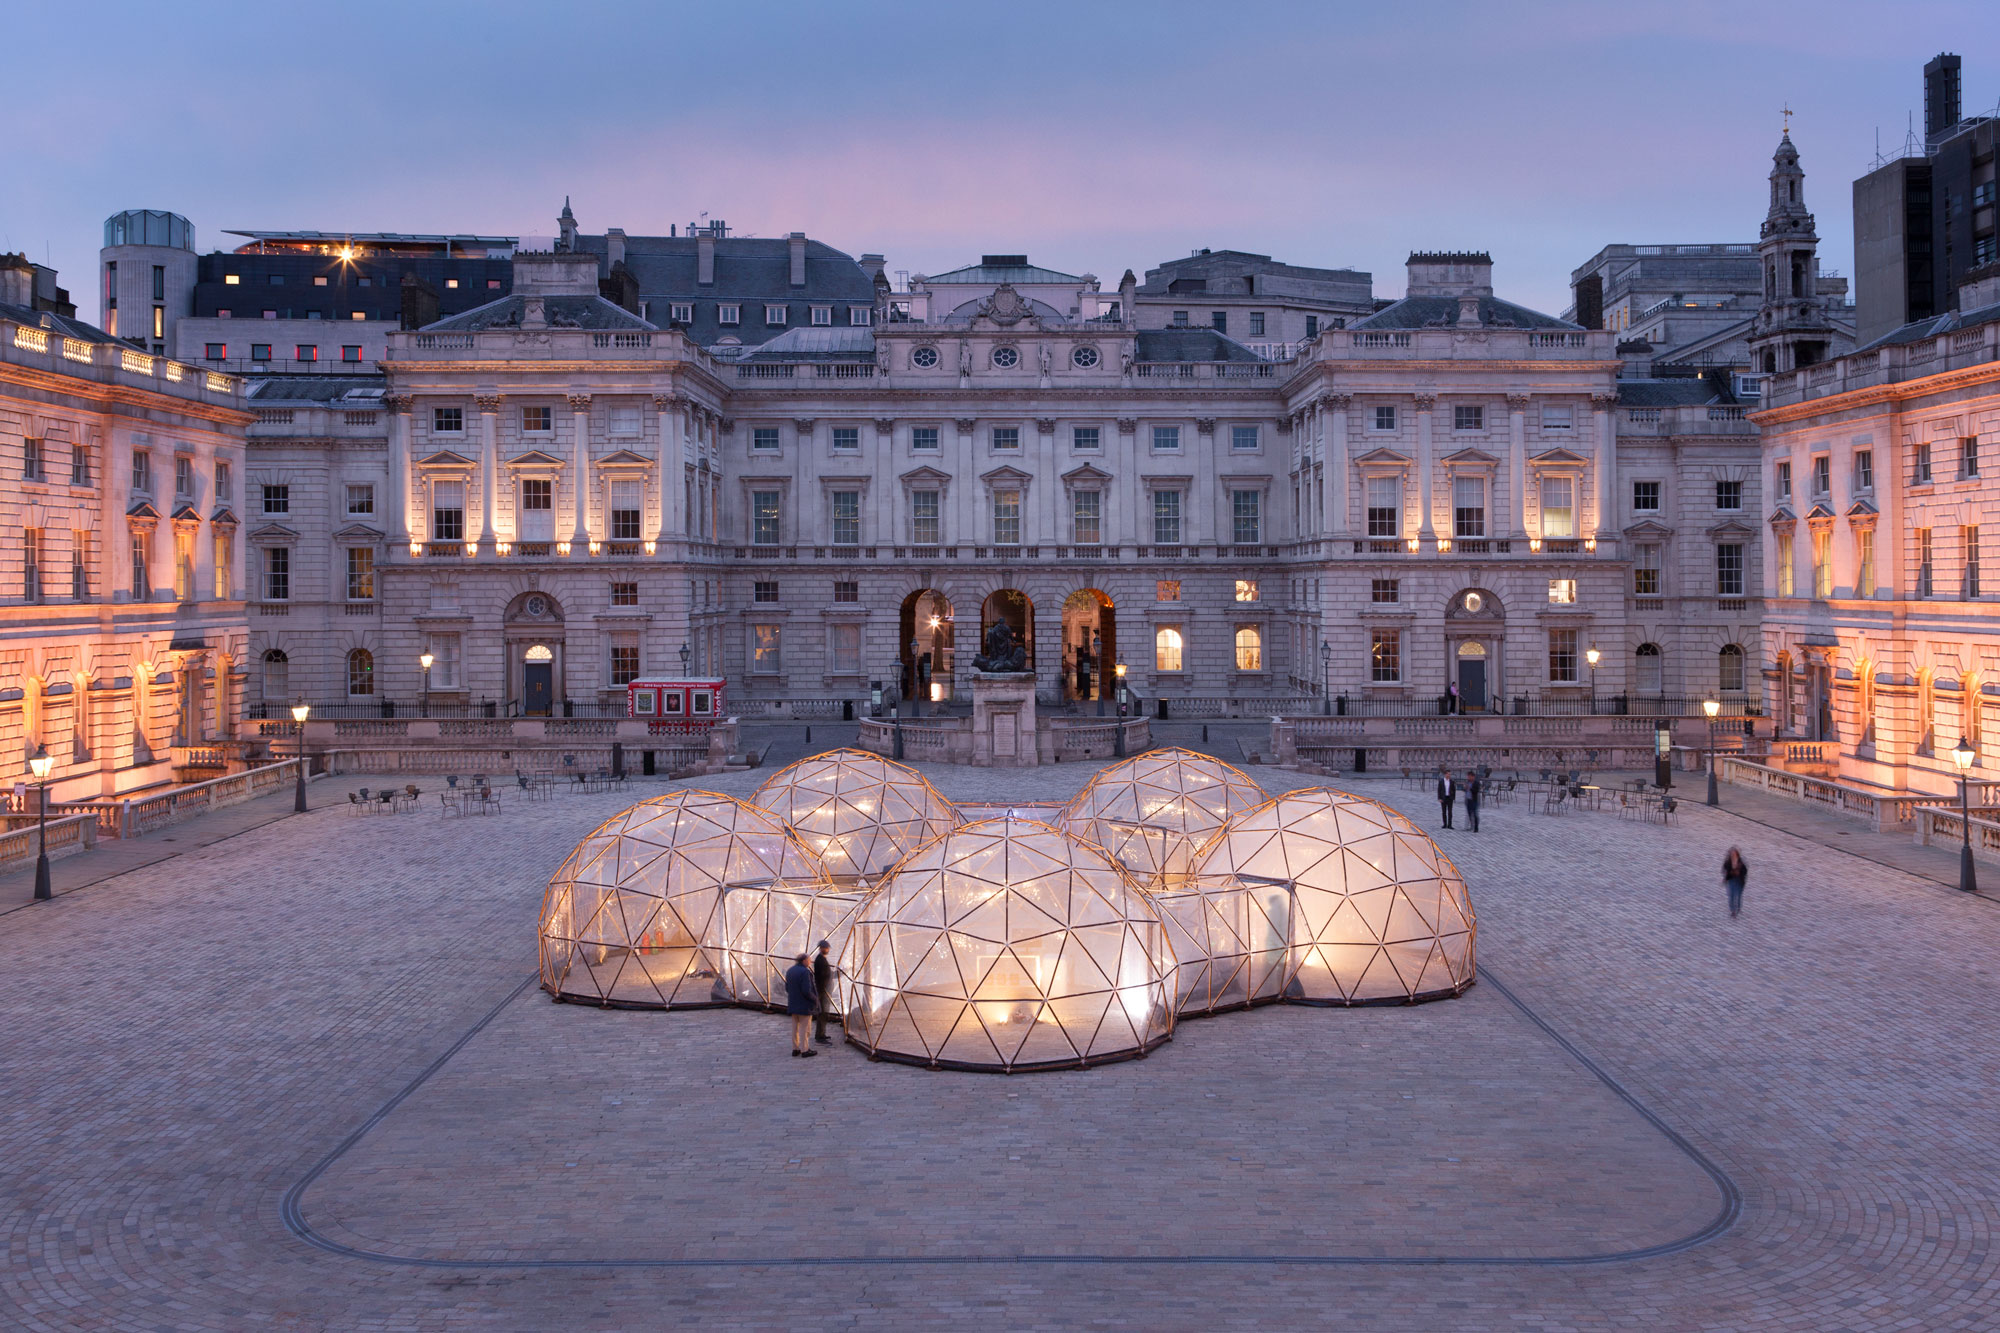 17.-Pollution-Pods-by-Michael-Pinsky-at-Someset-House2018-(c)-Michael-Pinsky